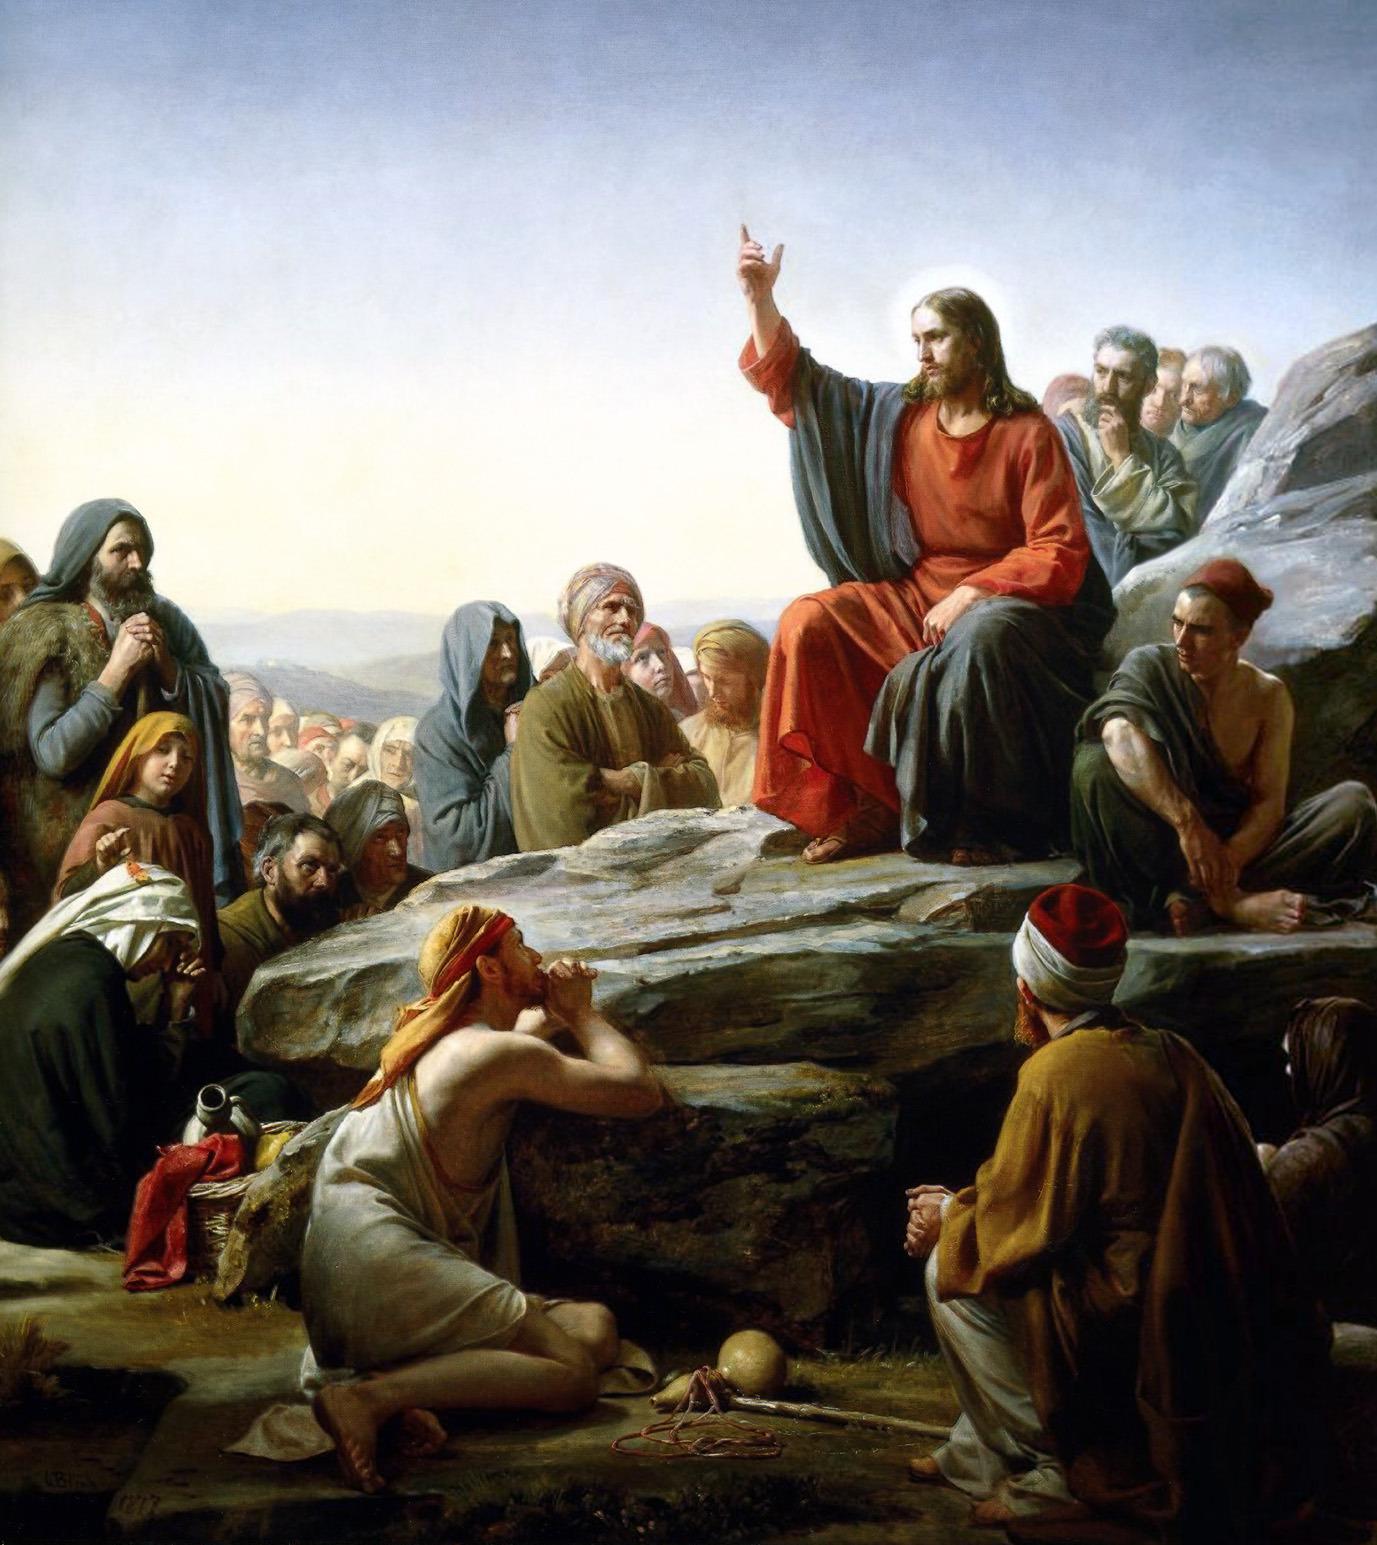 The Sermon on the Mount included Jesuss version of the Golden Rule